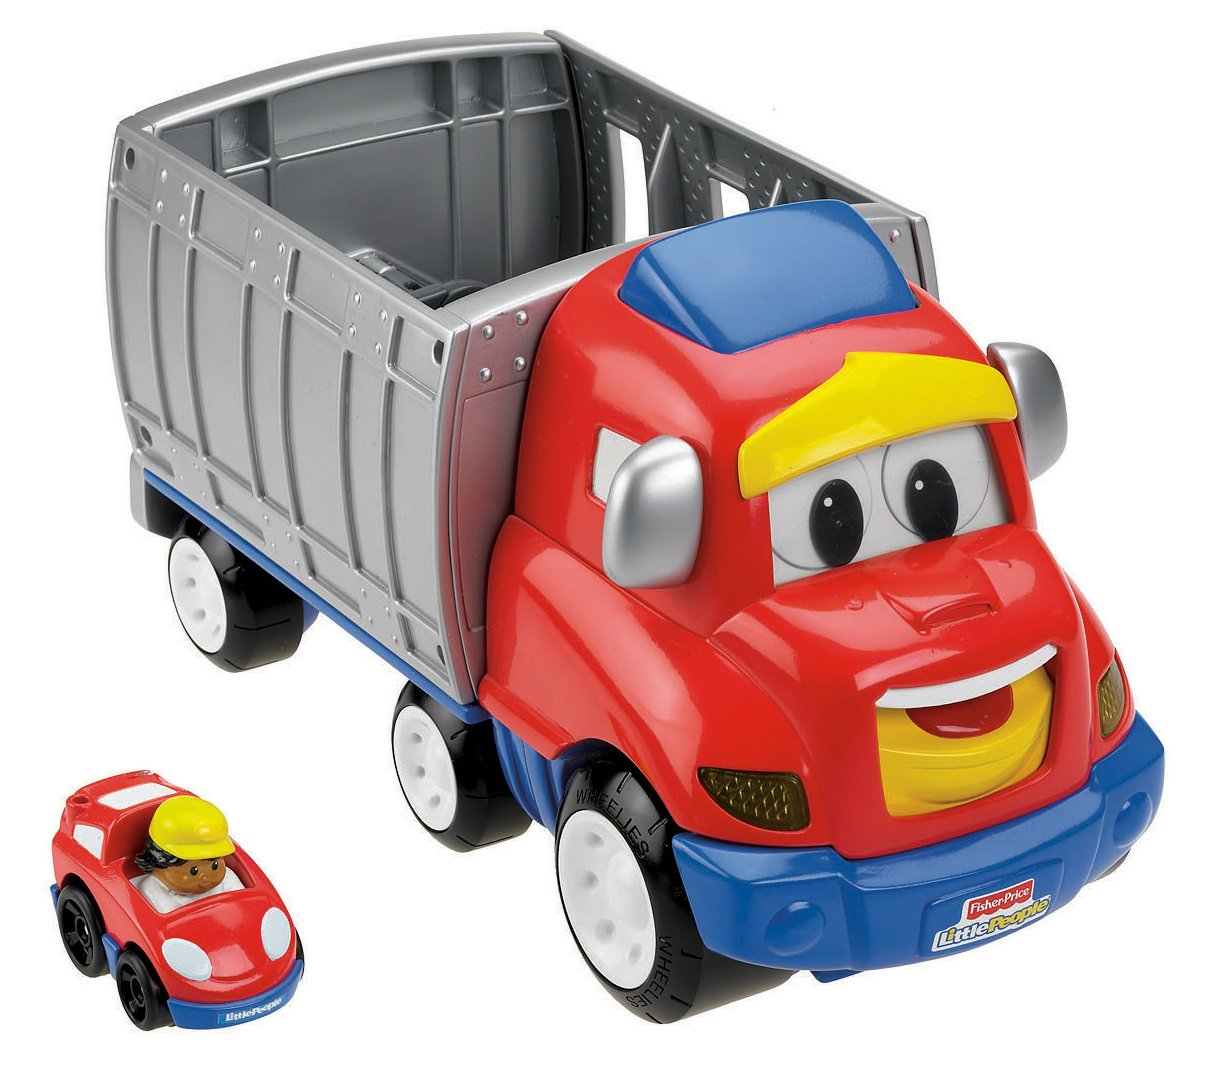 Toy Trucks For Boys : Top toddler toys for christmas it s baby time